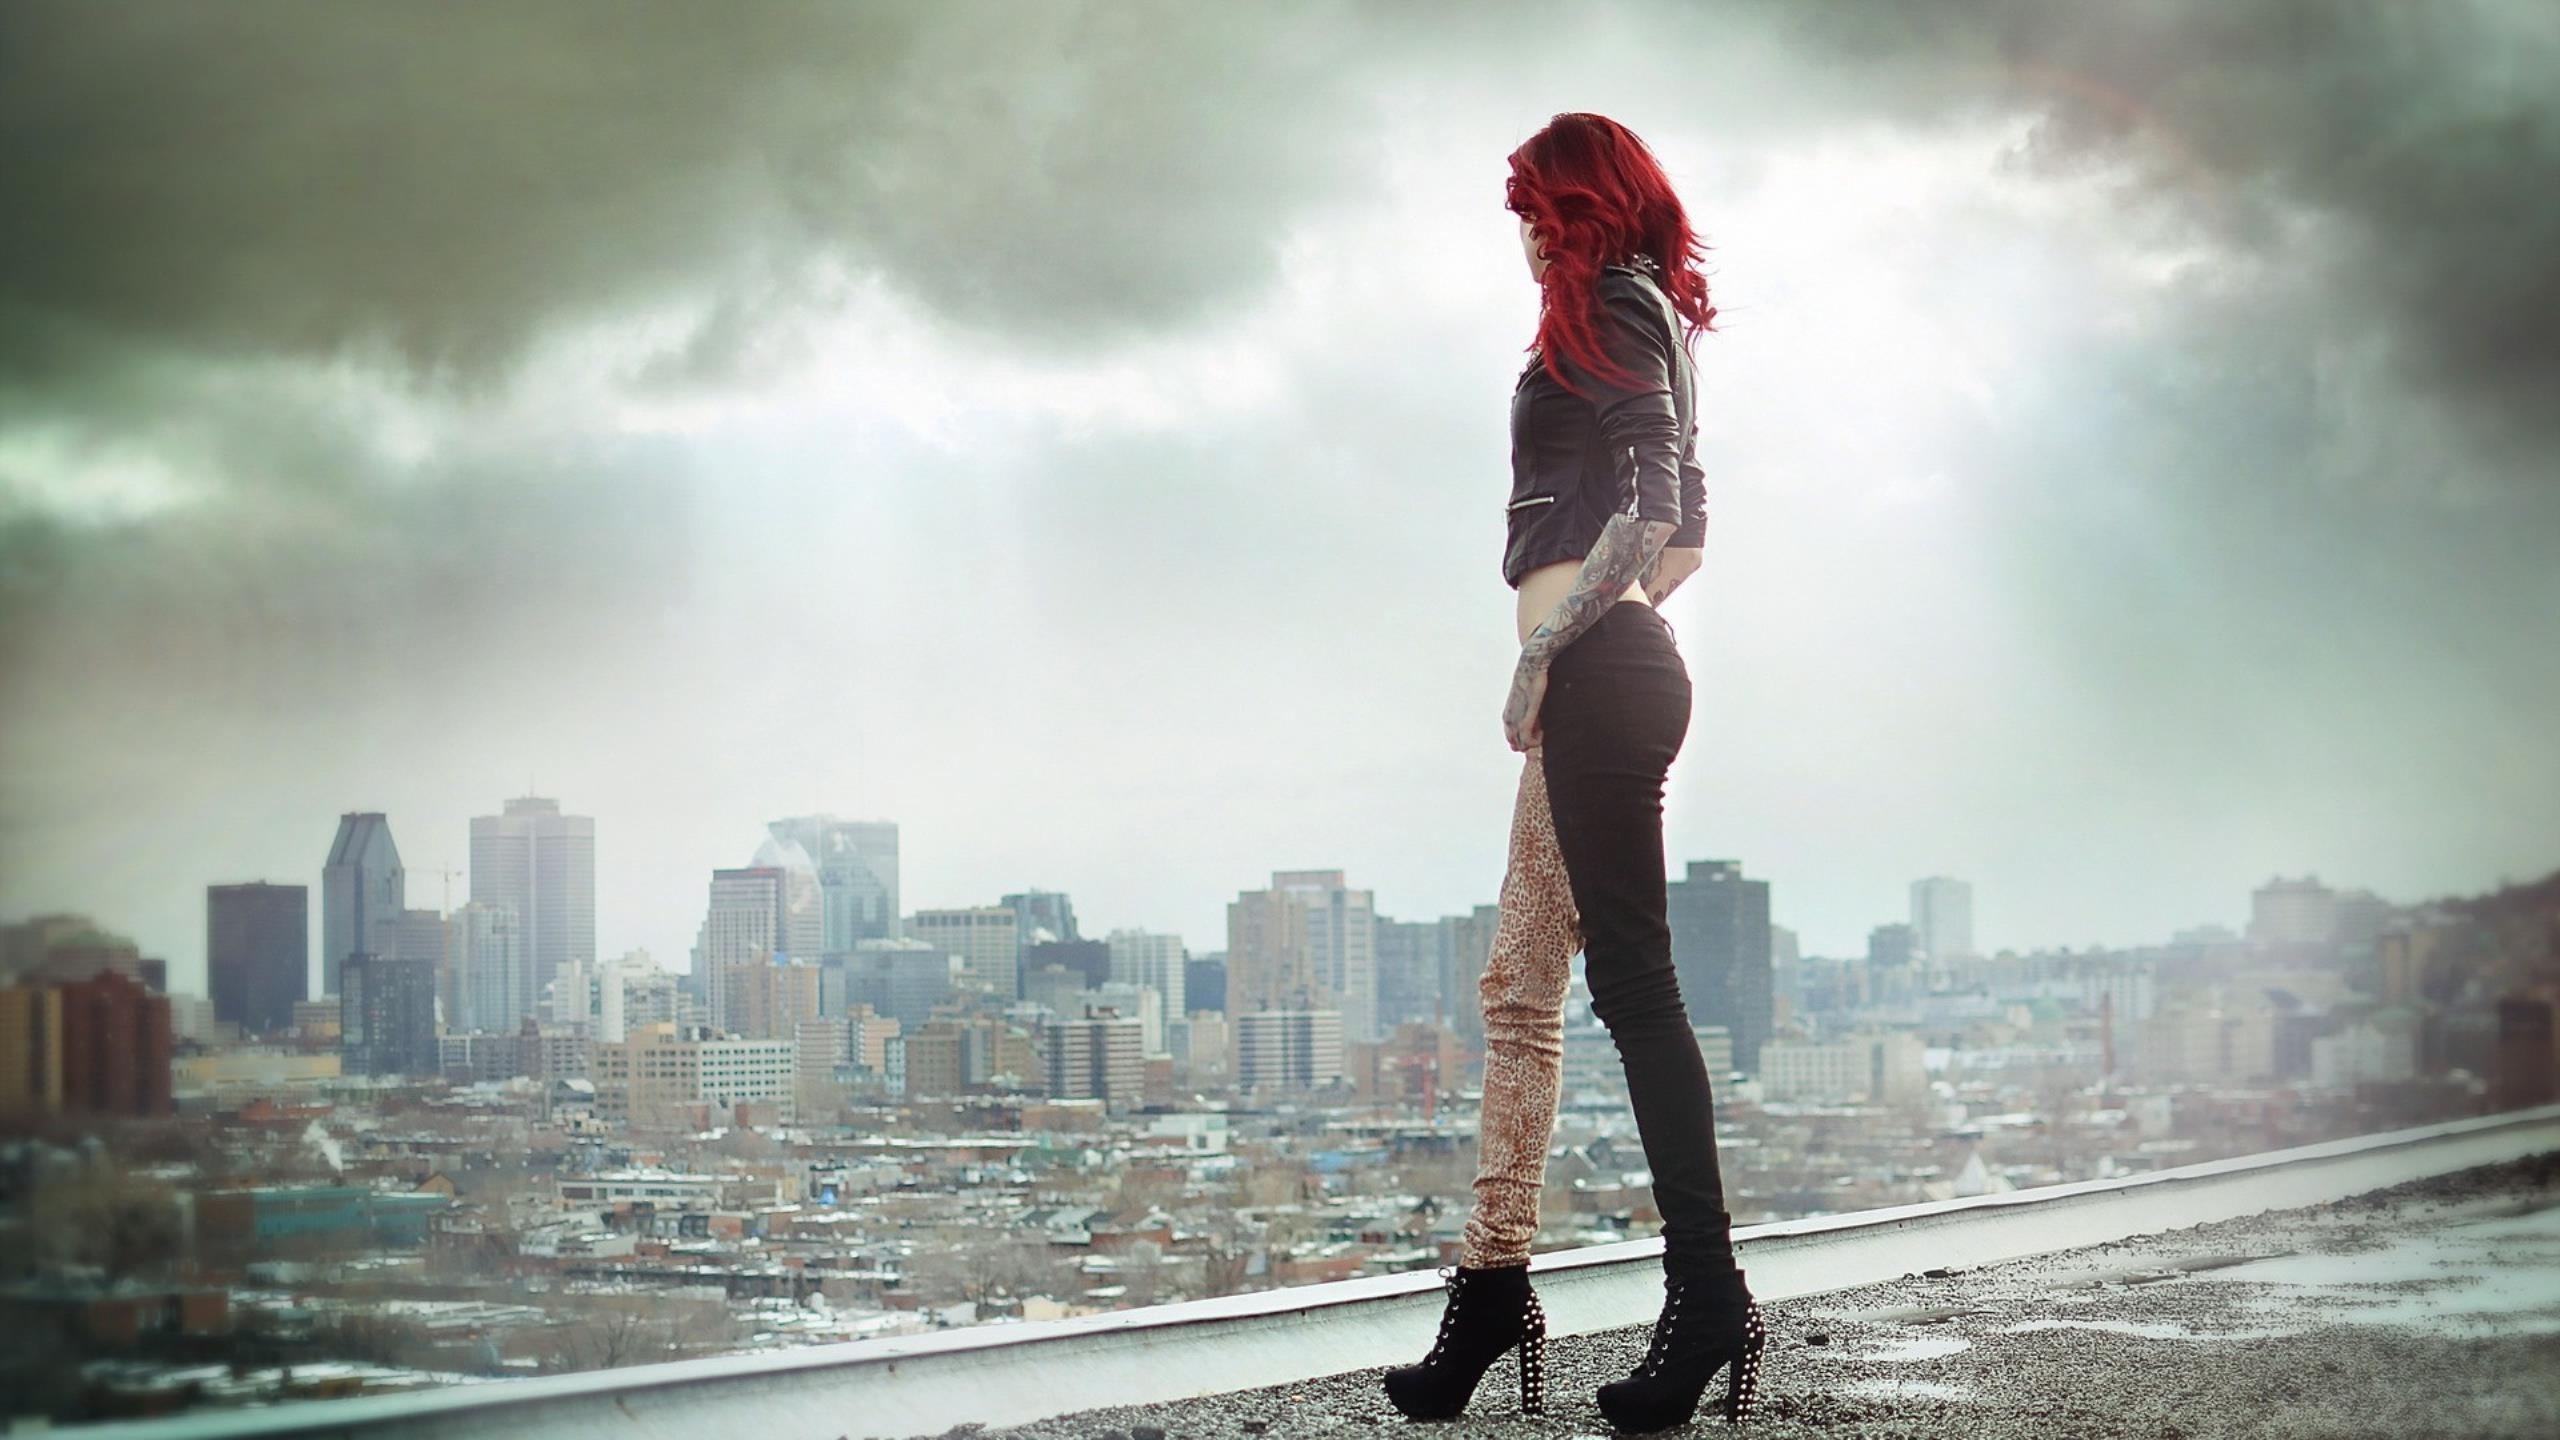 girl_model_fog_roof_83654_2560x1440